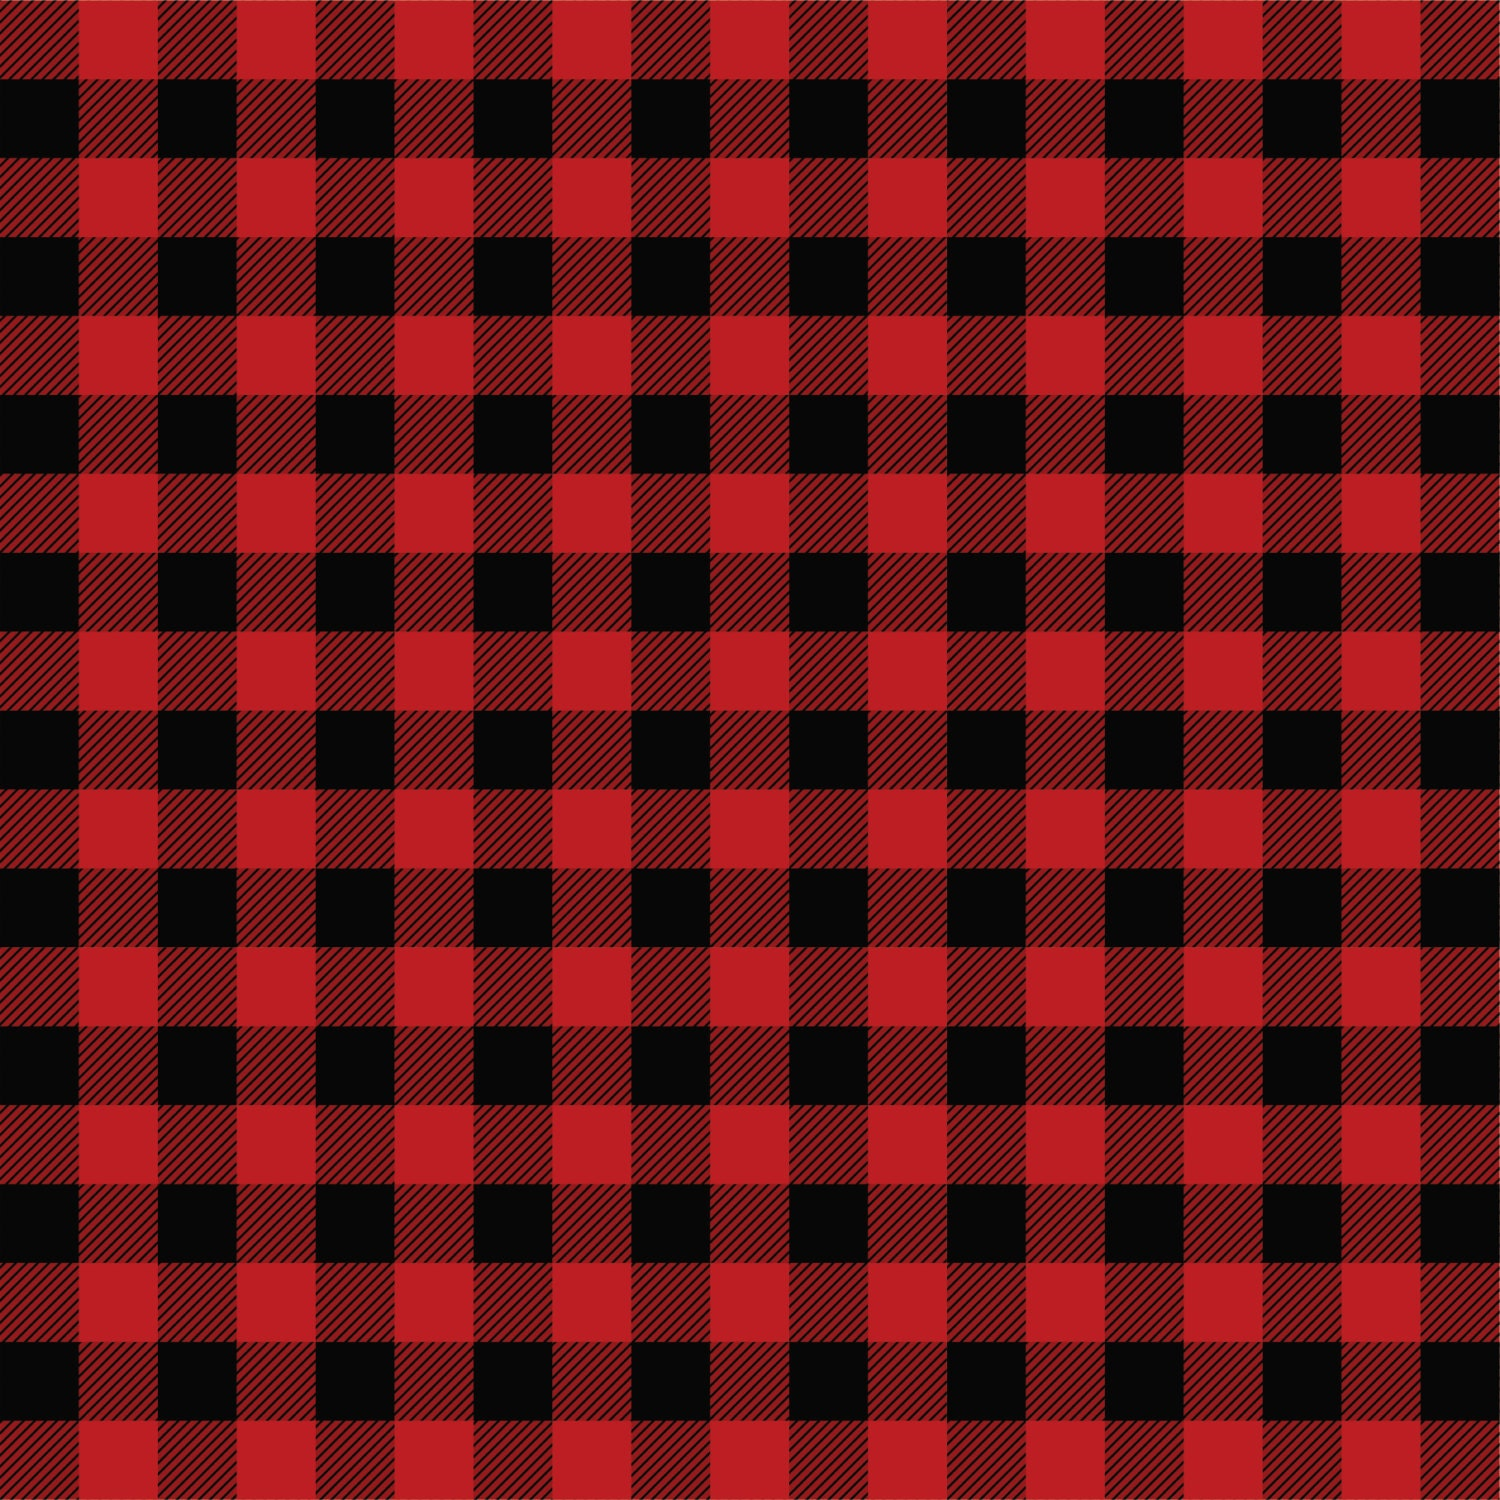 Red and black buffalo plaid HEAT TRANSFER by  : ilfullxfull6852277303xrm from www.etsy.com size 1500 x 1500 jpeg 784kB